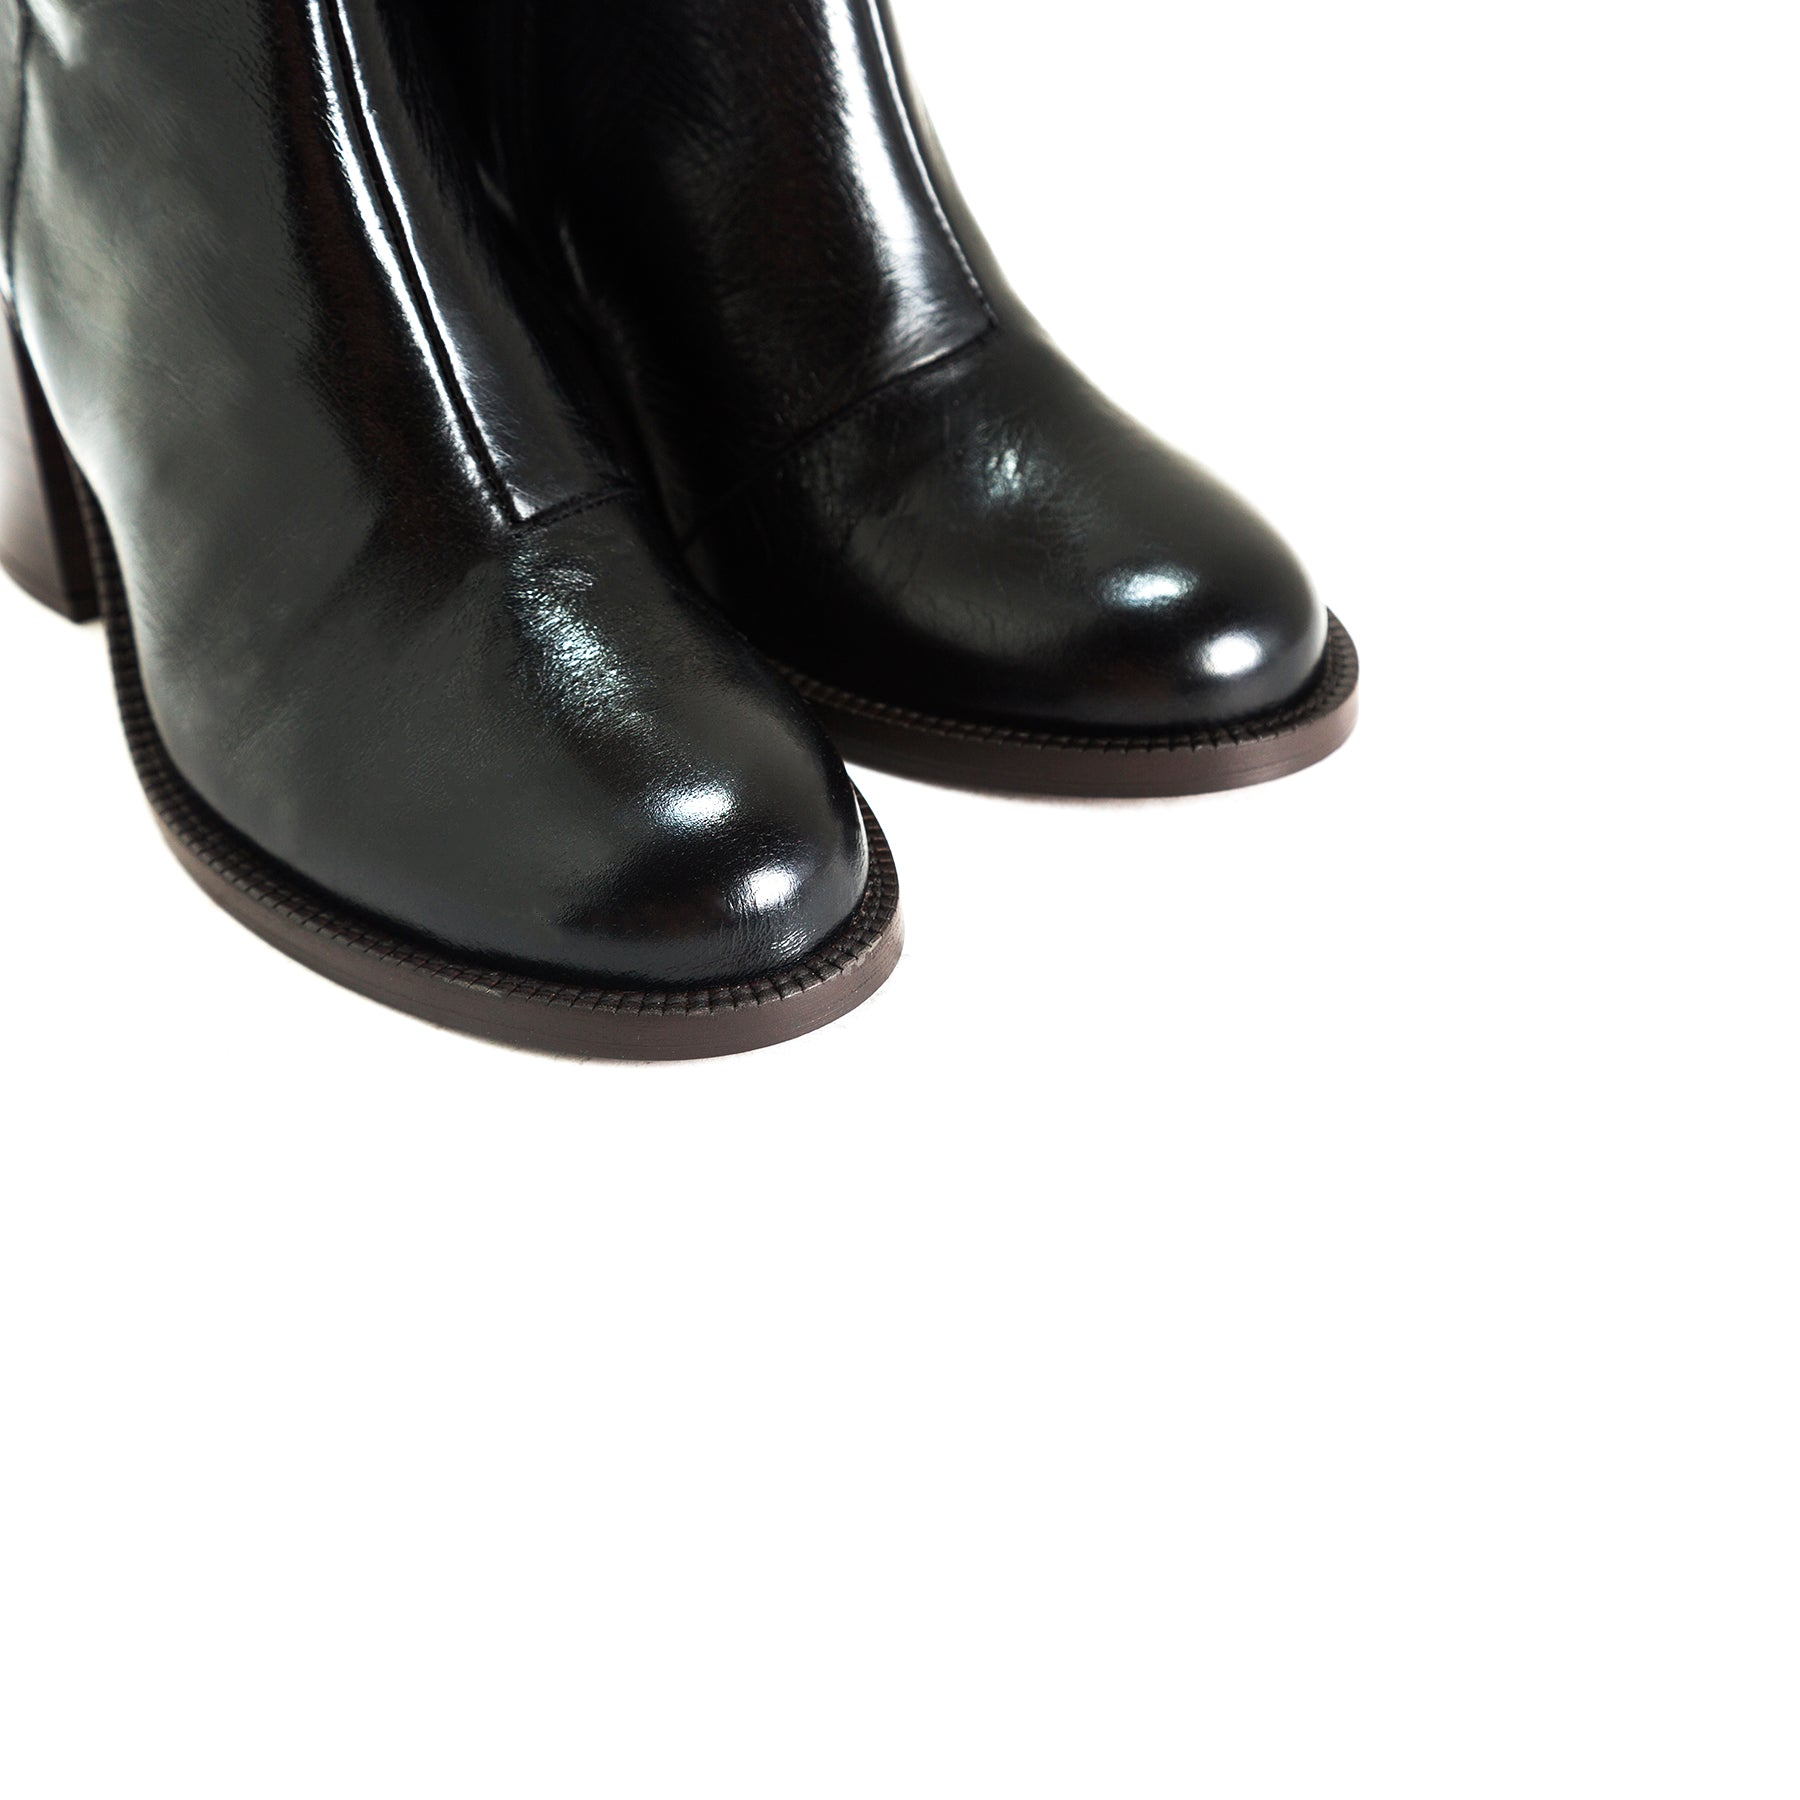 Waco Black Leather Booties